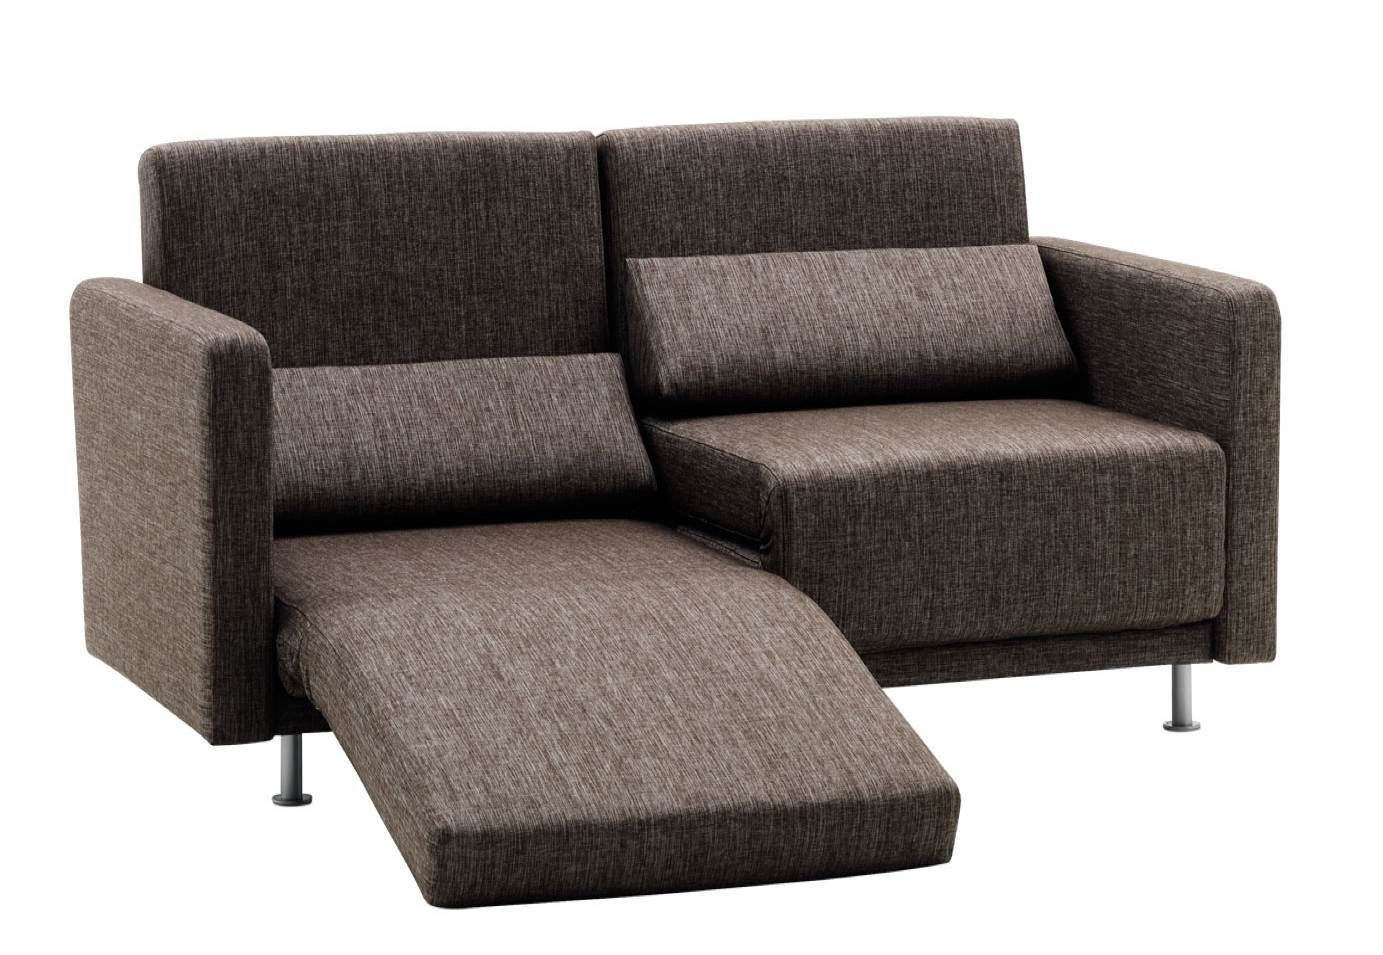 Boconcept Melo Reclining Sofa Bed Best Leather Reviews Modern Beds Contemporary